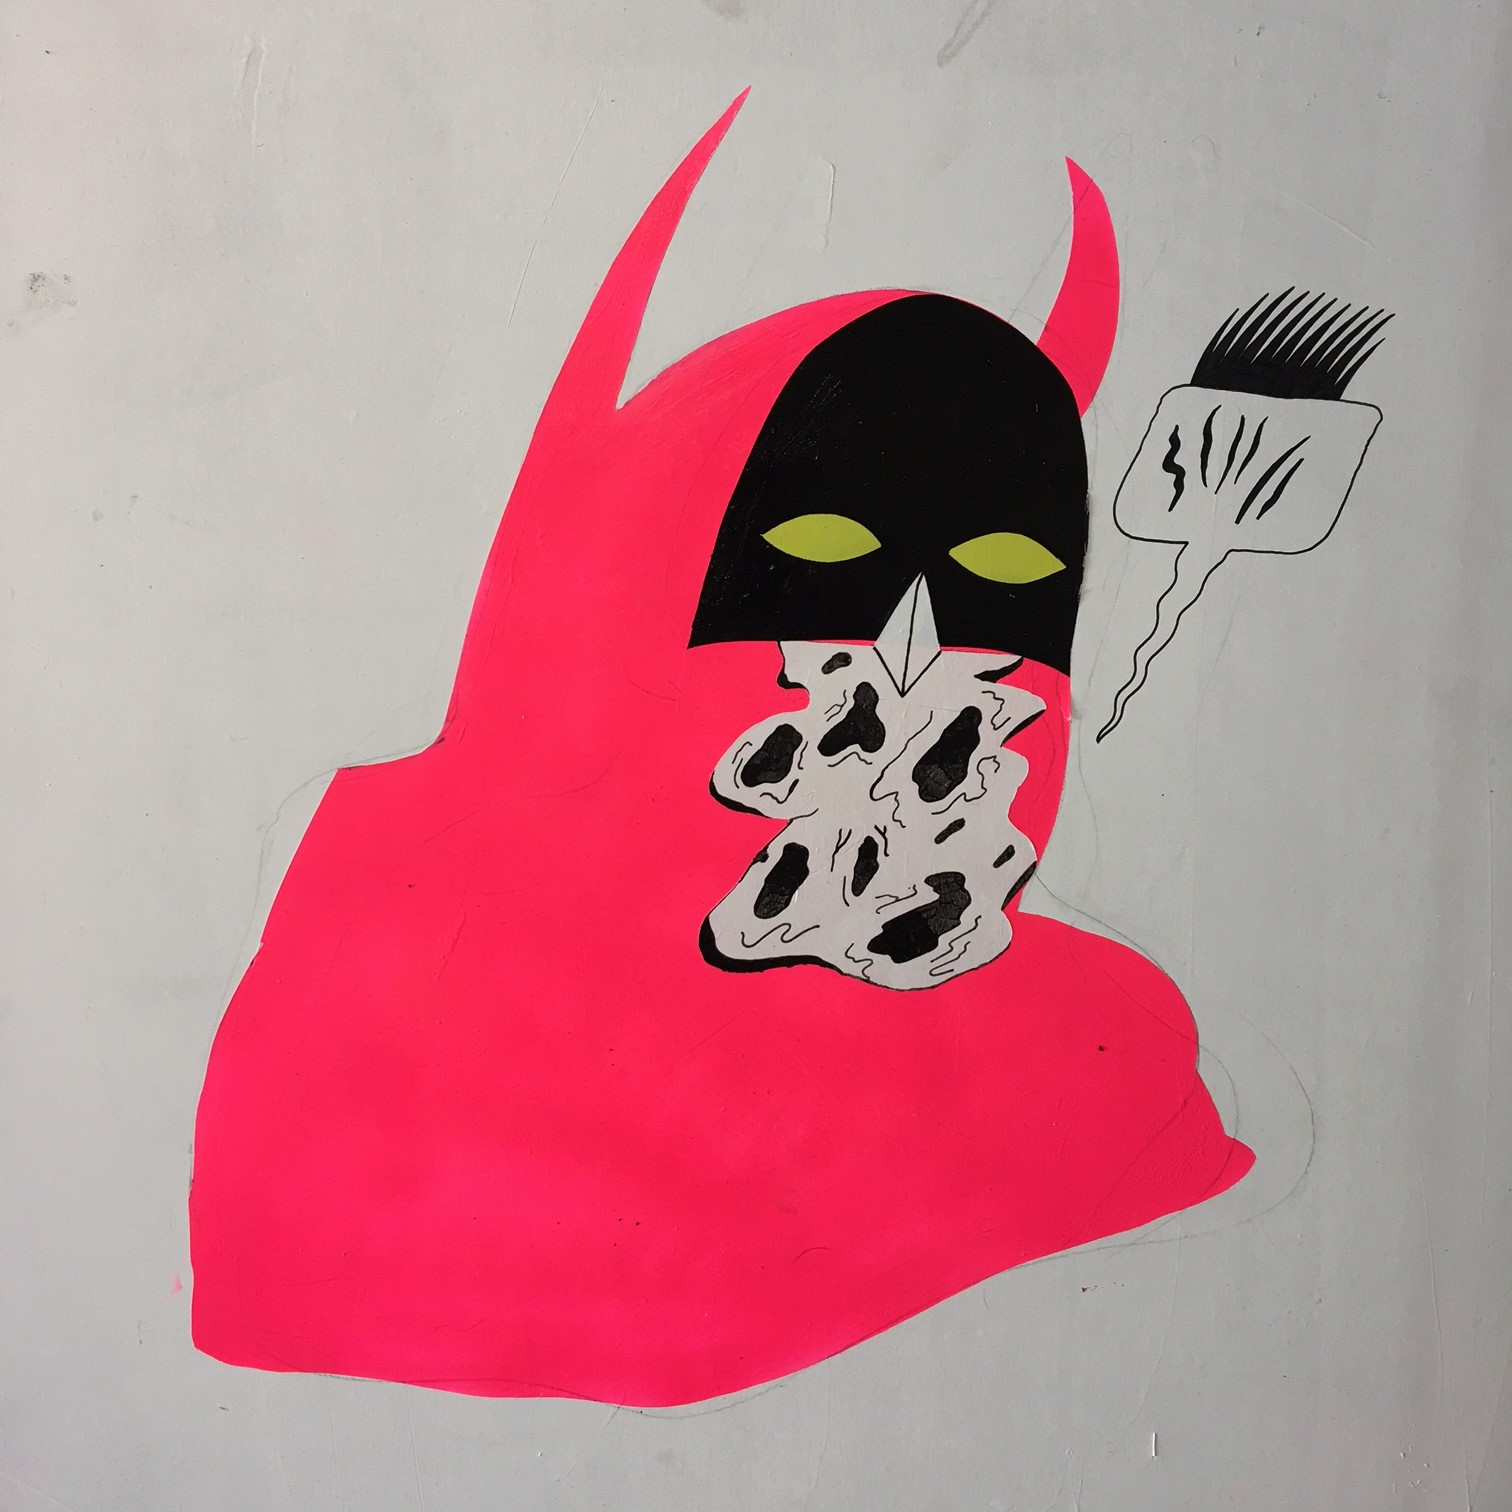 Mouth Cancer Neon Pink Batman , 2017  Acrylic media on Drywall  24 x 24 inches